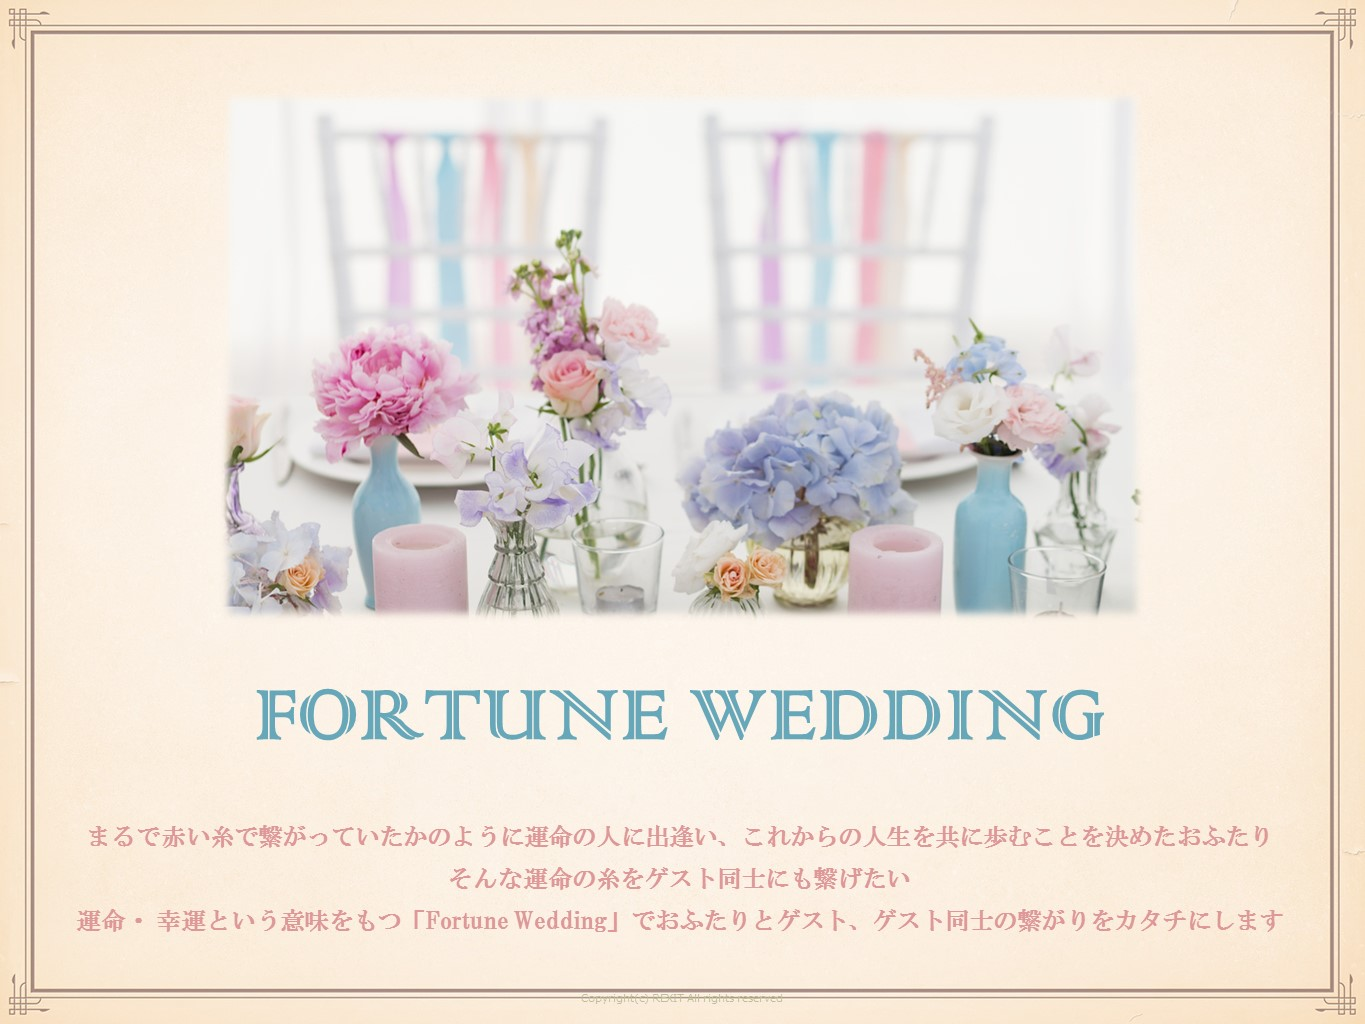 FORTUNE WEDDING